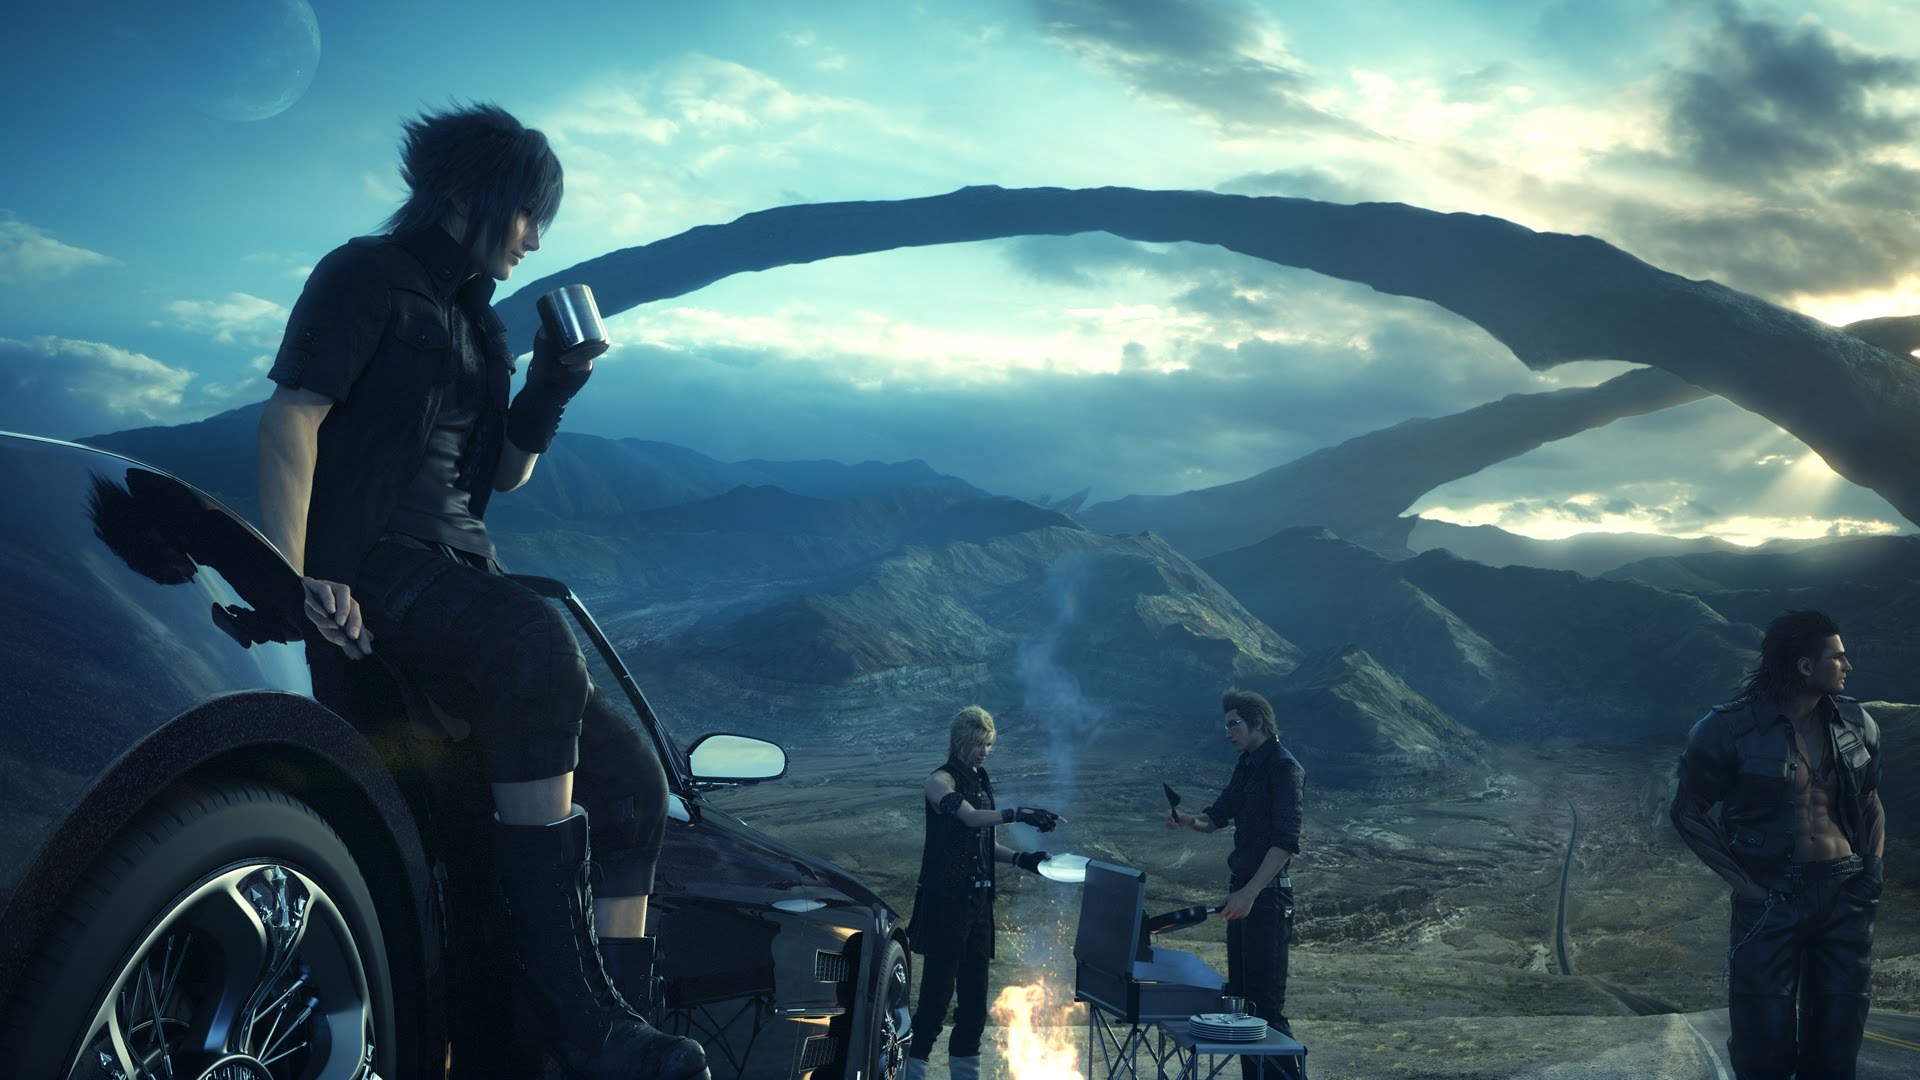 Final Fantasy 15 Is Pivotal To Franchises Future Success, Says Dev e0452967241bb140c7a28989ac426e6786d4caa6